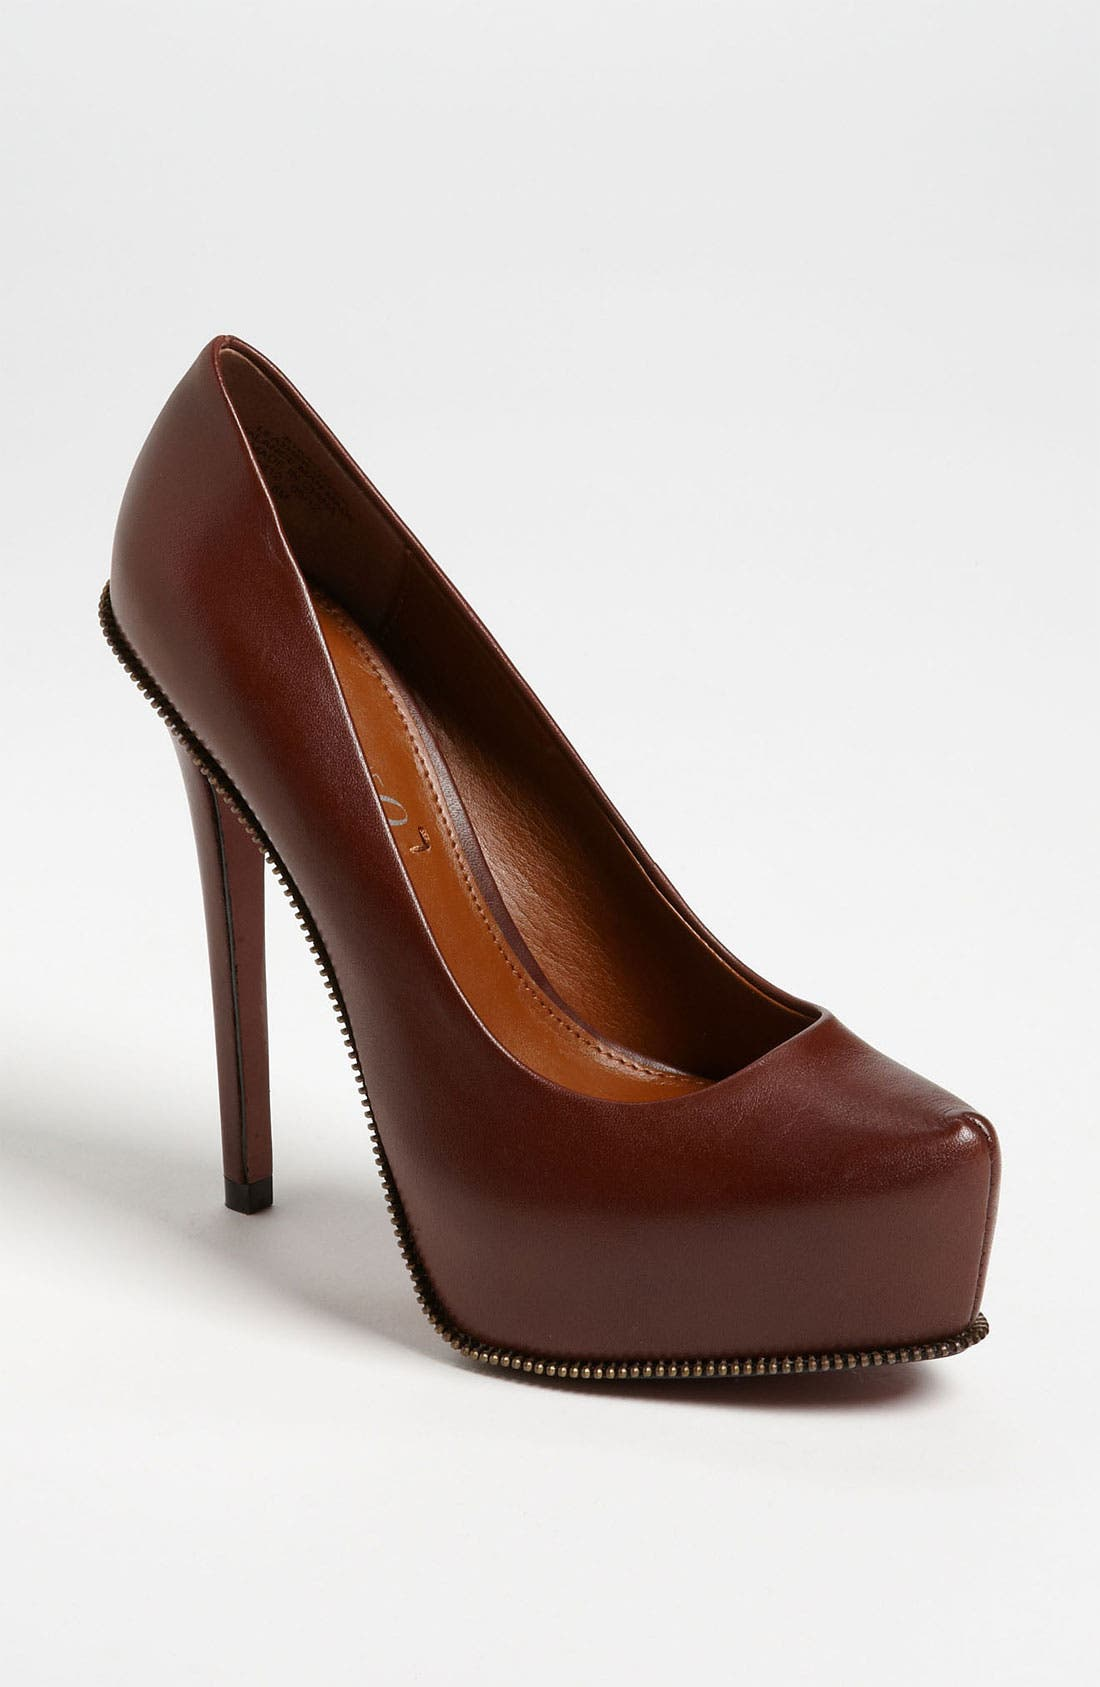 Alternate Image 1 Selected - Boutique 9 'Kaylie' Pump